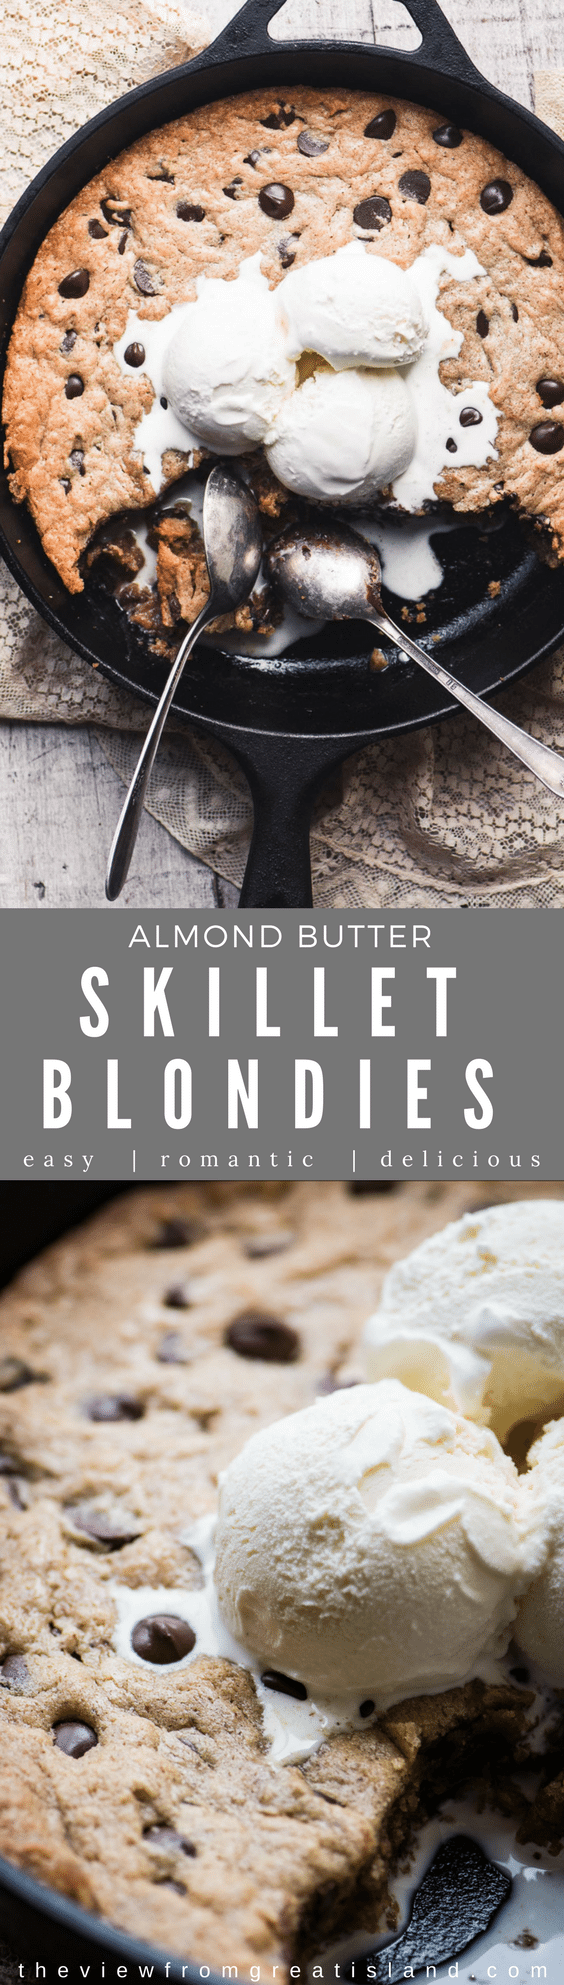 These Almond Butter Skillet Blondies are an easy one bowl skillet dessert that makes a quick treat for the family, or the perfect ending to a romantic evening. #dessert #skilletbrownies #Valentinesday #blondies #almondbutter #onebowl #chocolatechips #chocolatechipblondies #brownies #puddingcake #romanticdessert #skilletdessert